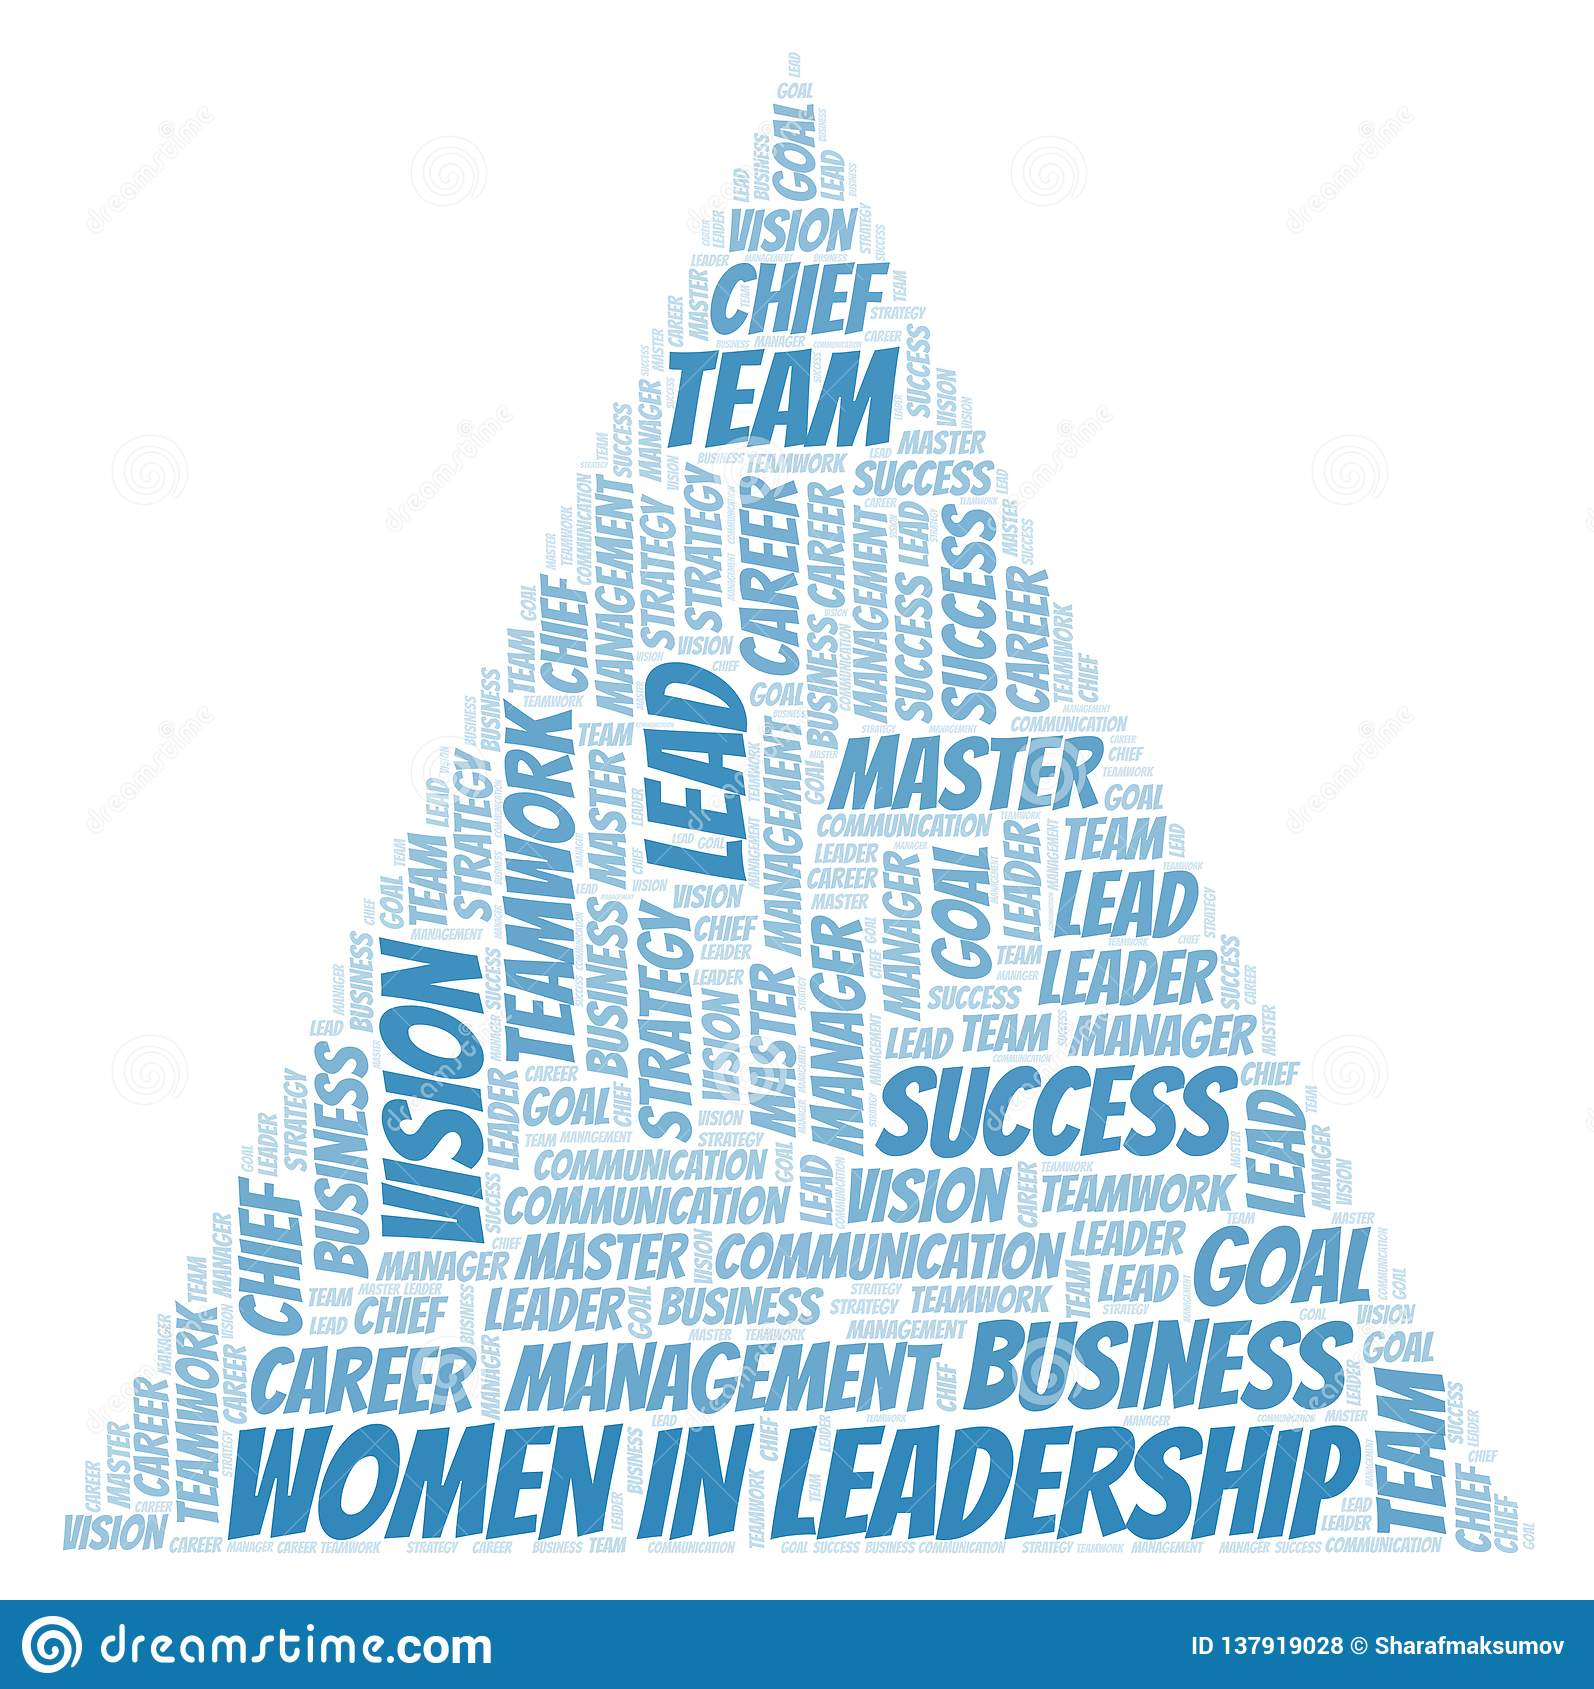 Women In Leadership word cloud